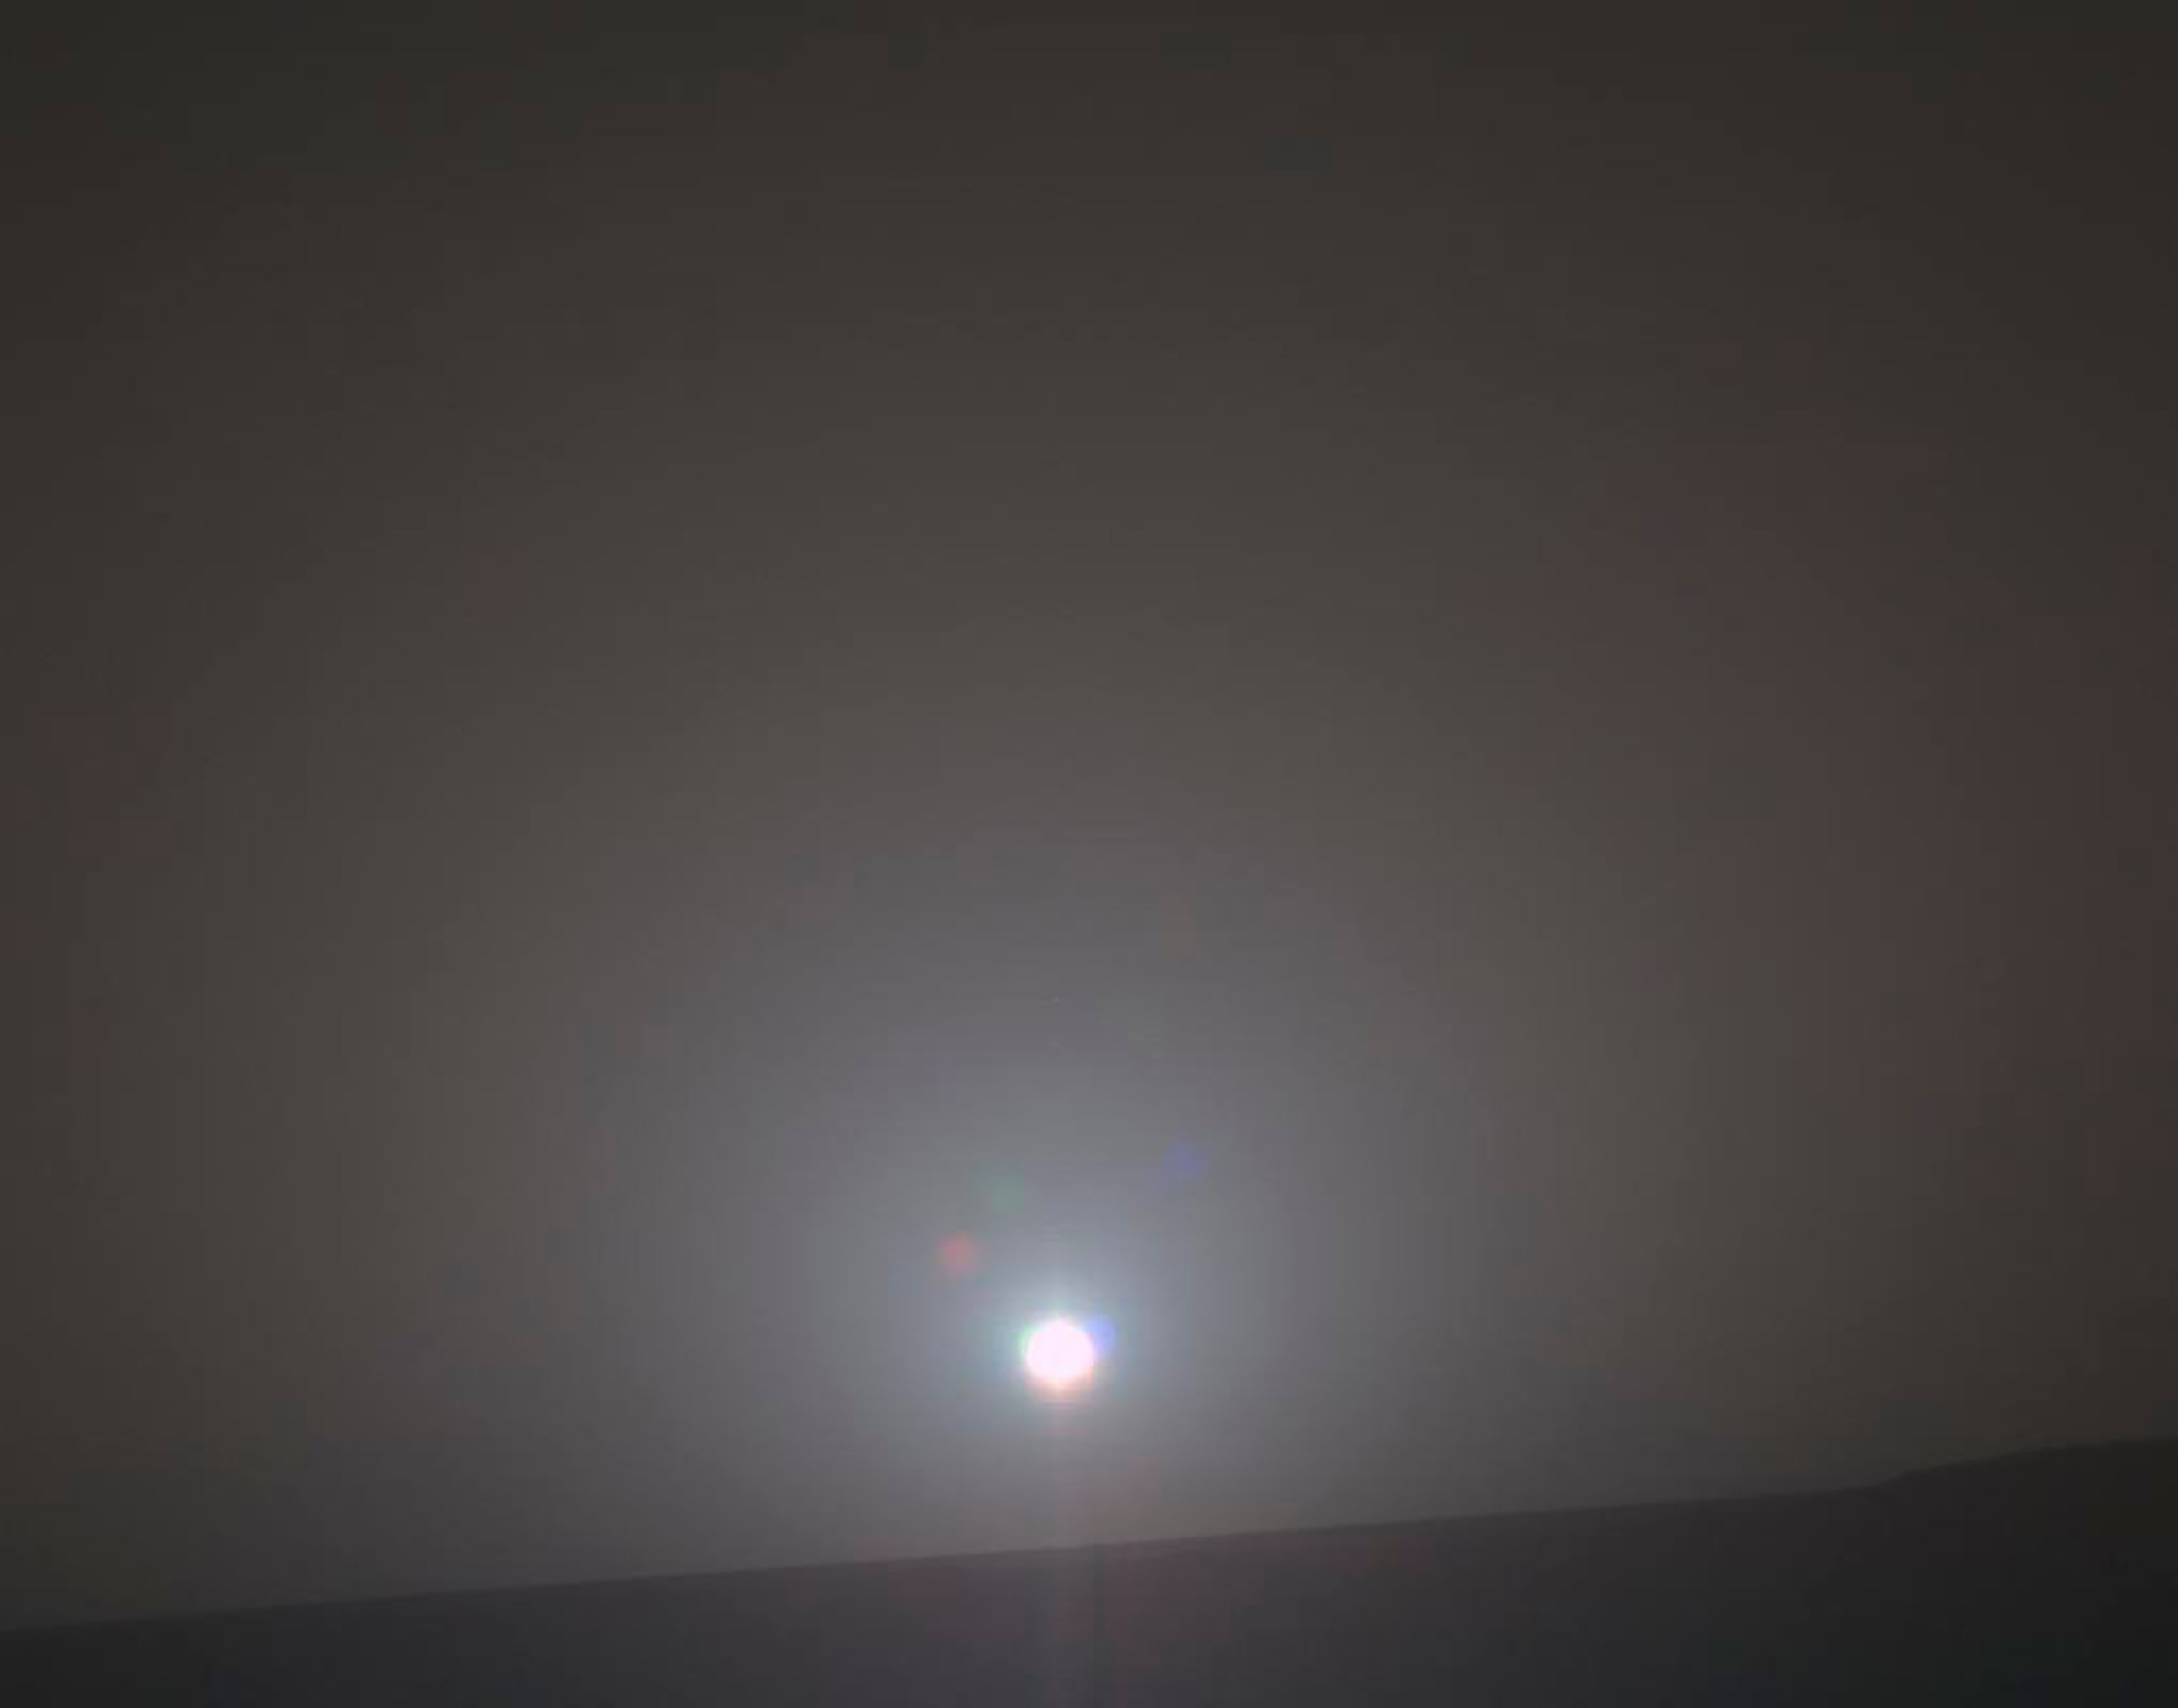 The sun rises on Mars on Feb. 15, 2018.